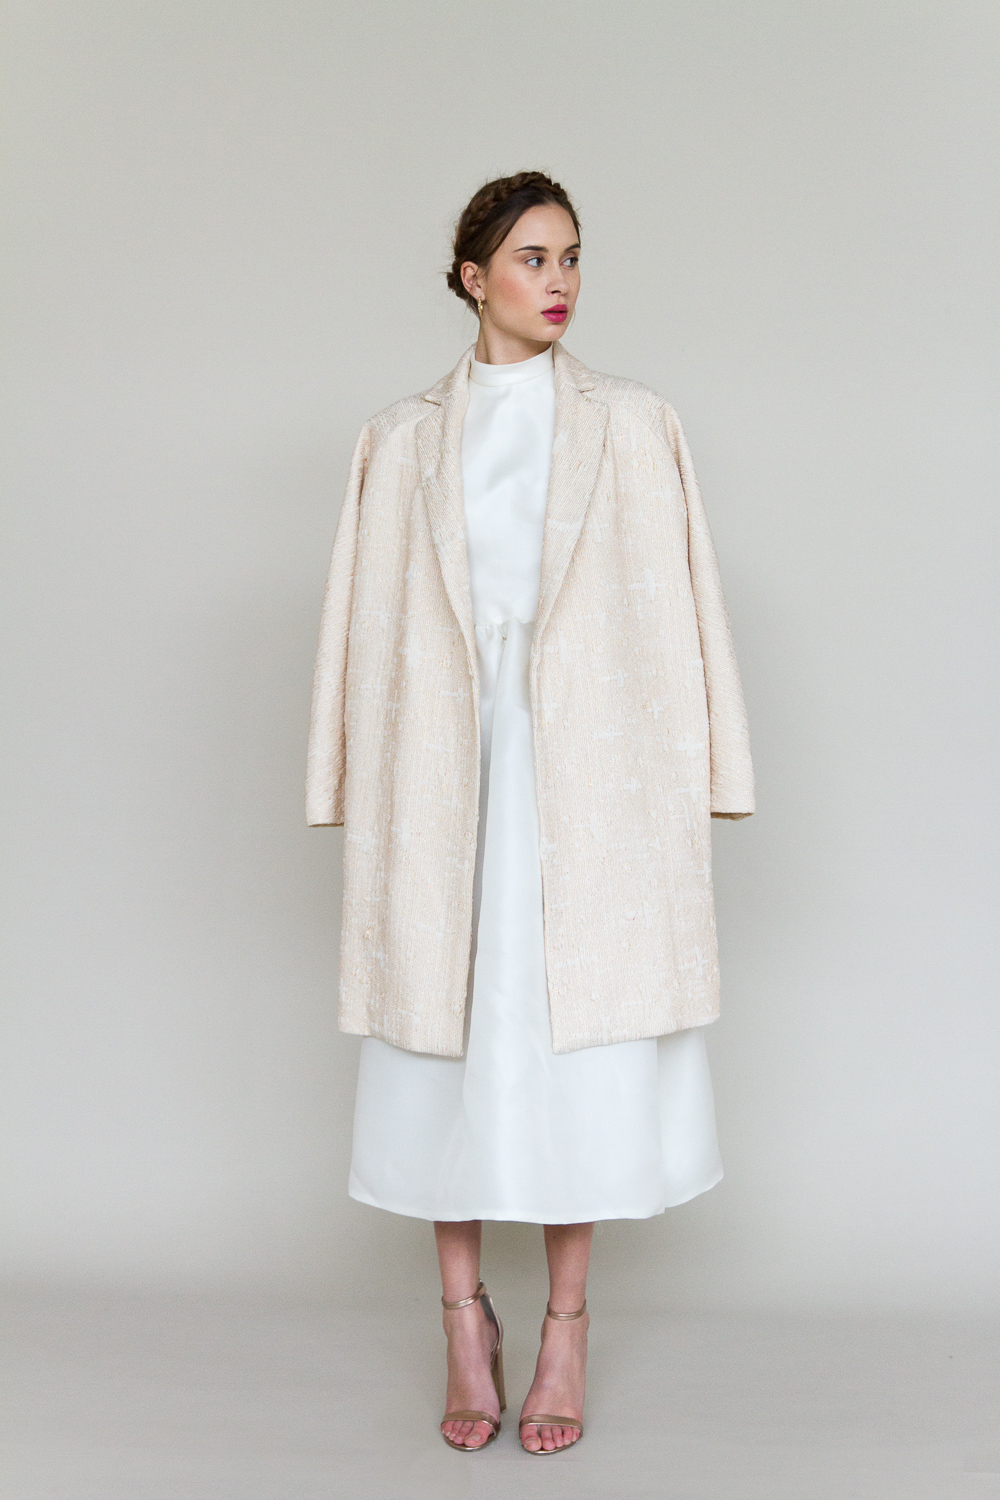 bessie-manteau-robe-de-mariee-valentine-avoh-wedding-dress-coat-dvt.jpg